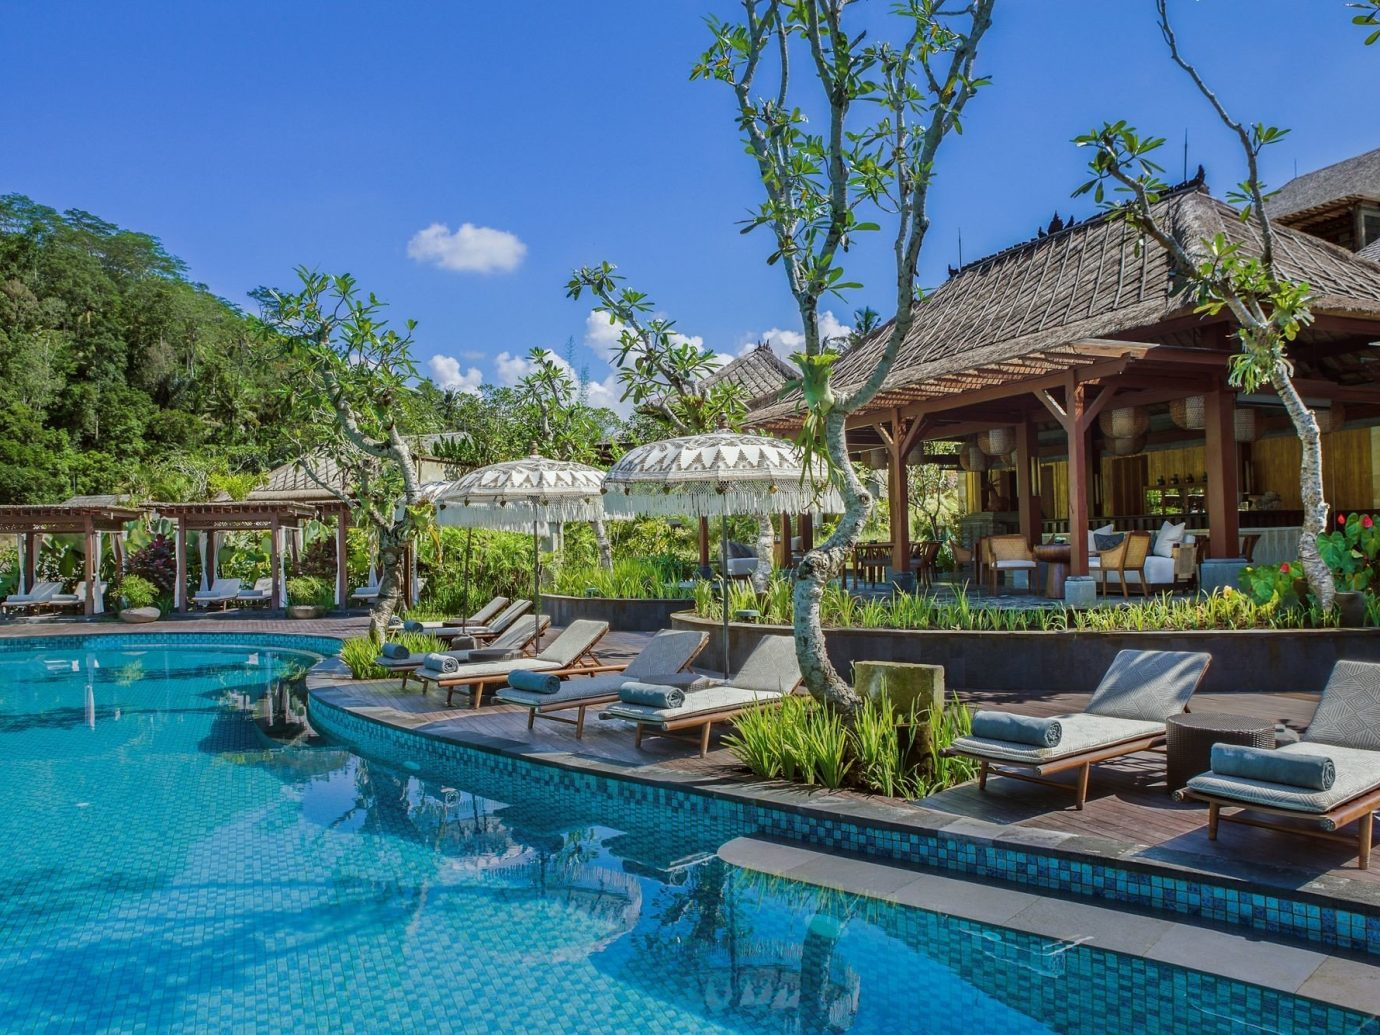 Health + Wellness Hotels tree outdoor sky swimming pool Resort property leisure estate Villa resort town real estate Pool eco hotel blue swimming